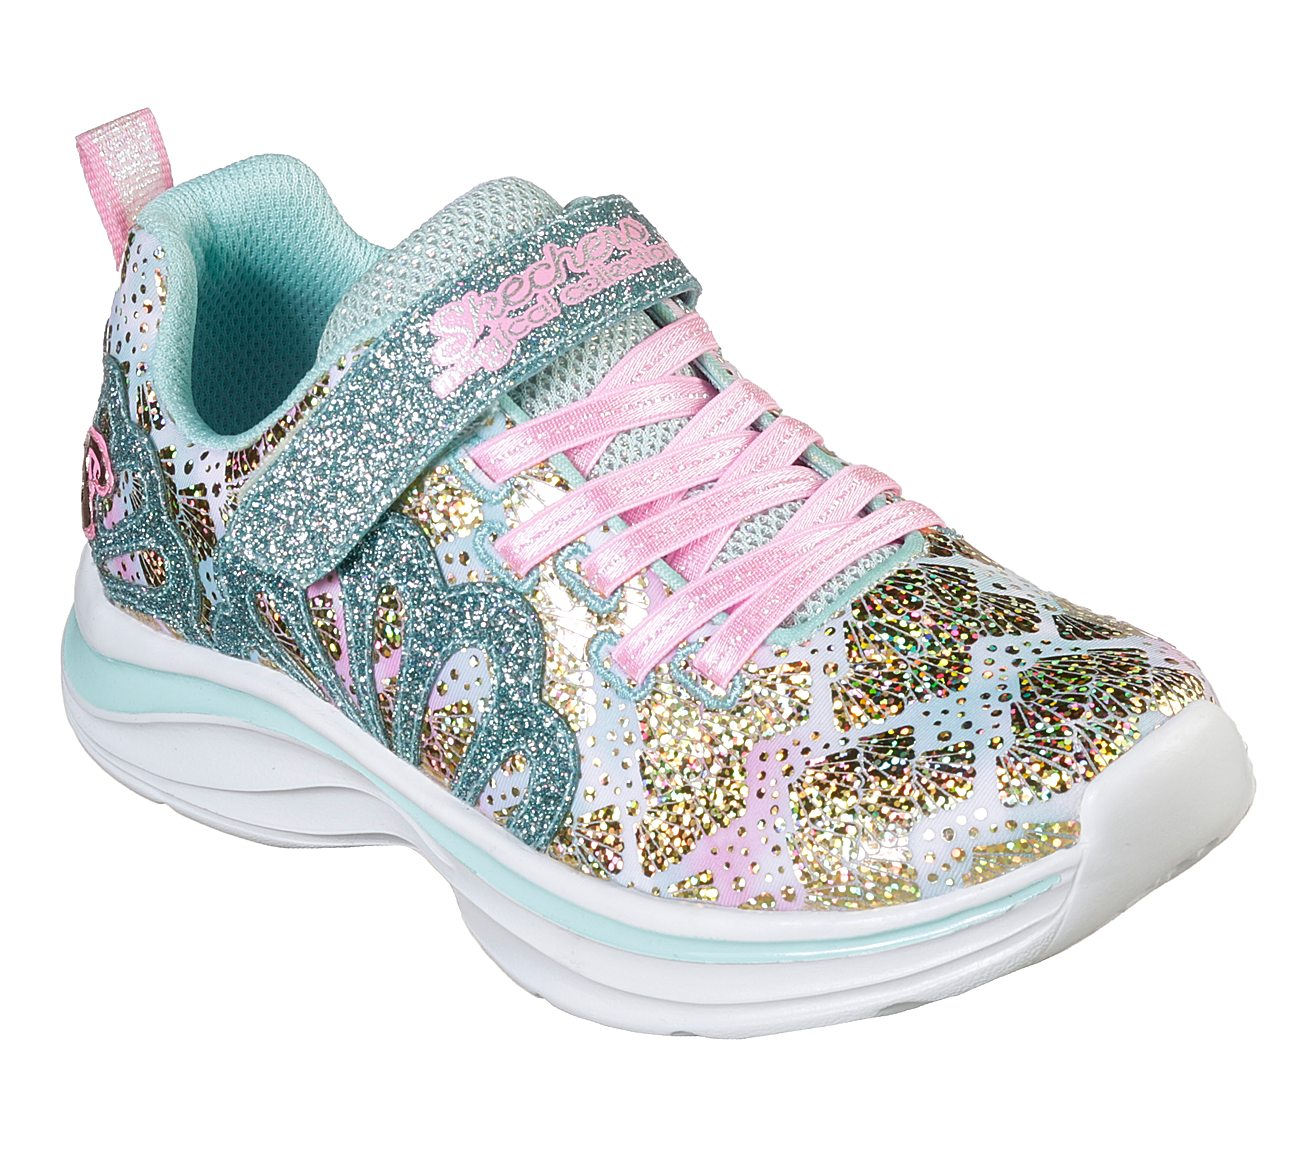 SKECHERS Double Dreams - Mermaid Music